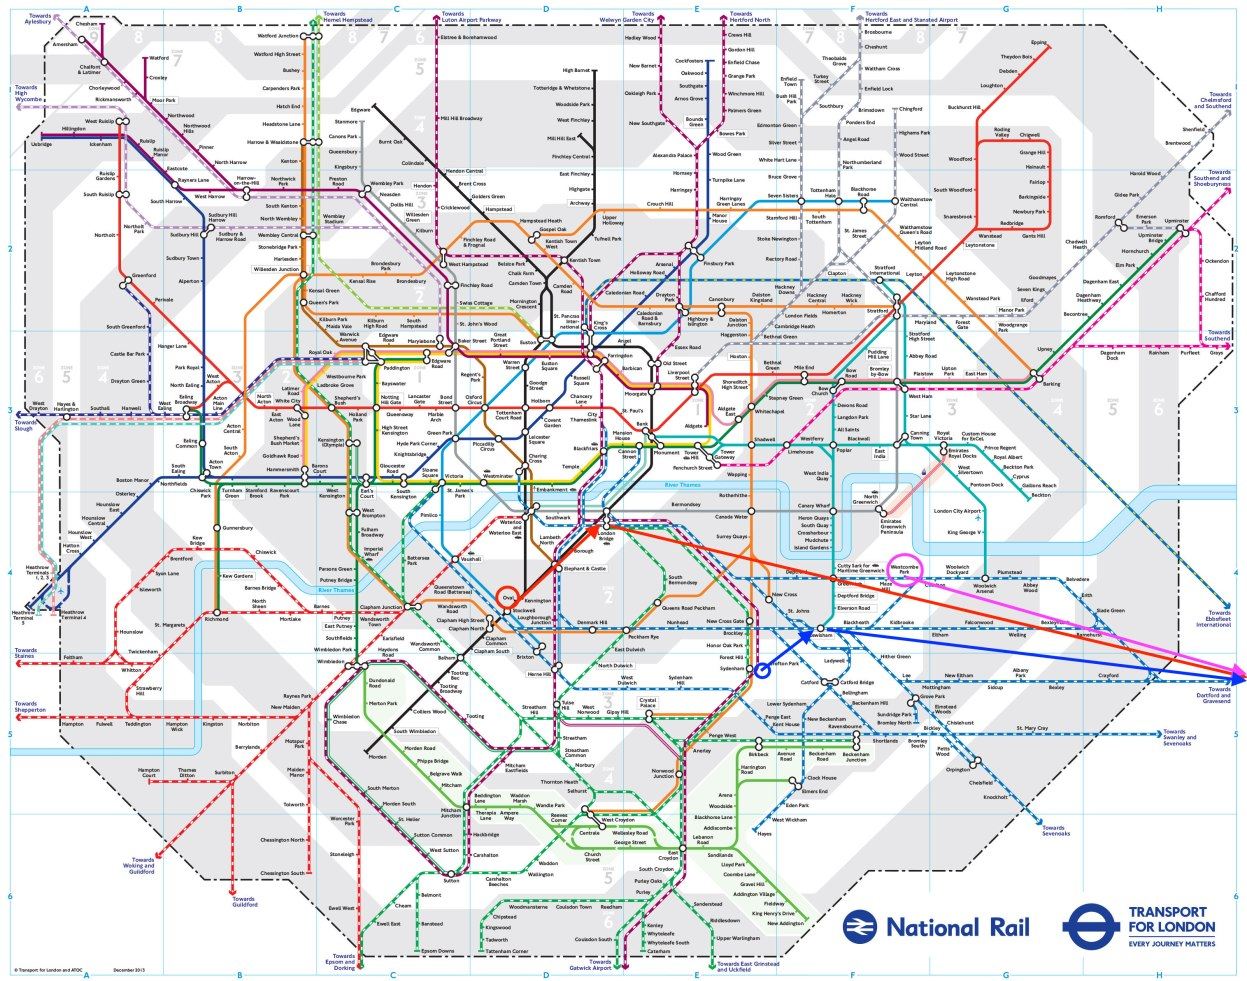 london-train-map-1.jpg